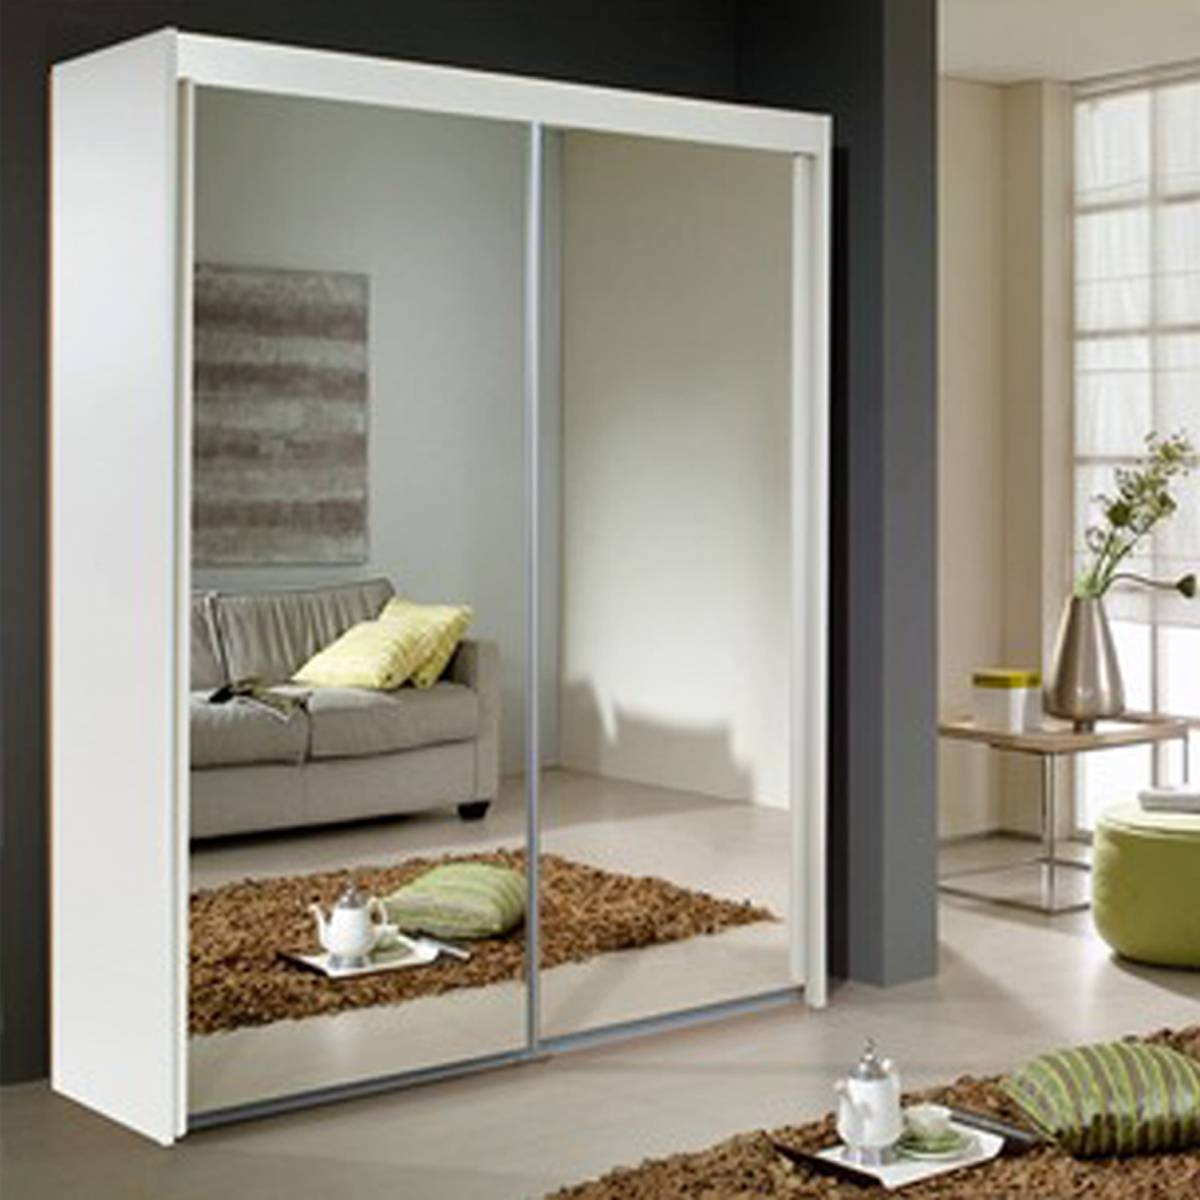 Sliding Door Mirrored Wardrobe From The House Of Reeves Croydon with regard to White Mirrored Wardrobes (Image 9 of 15)